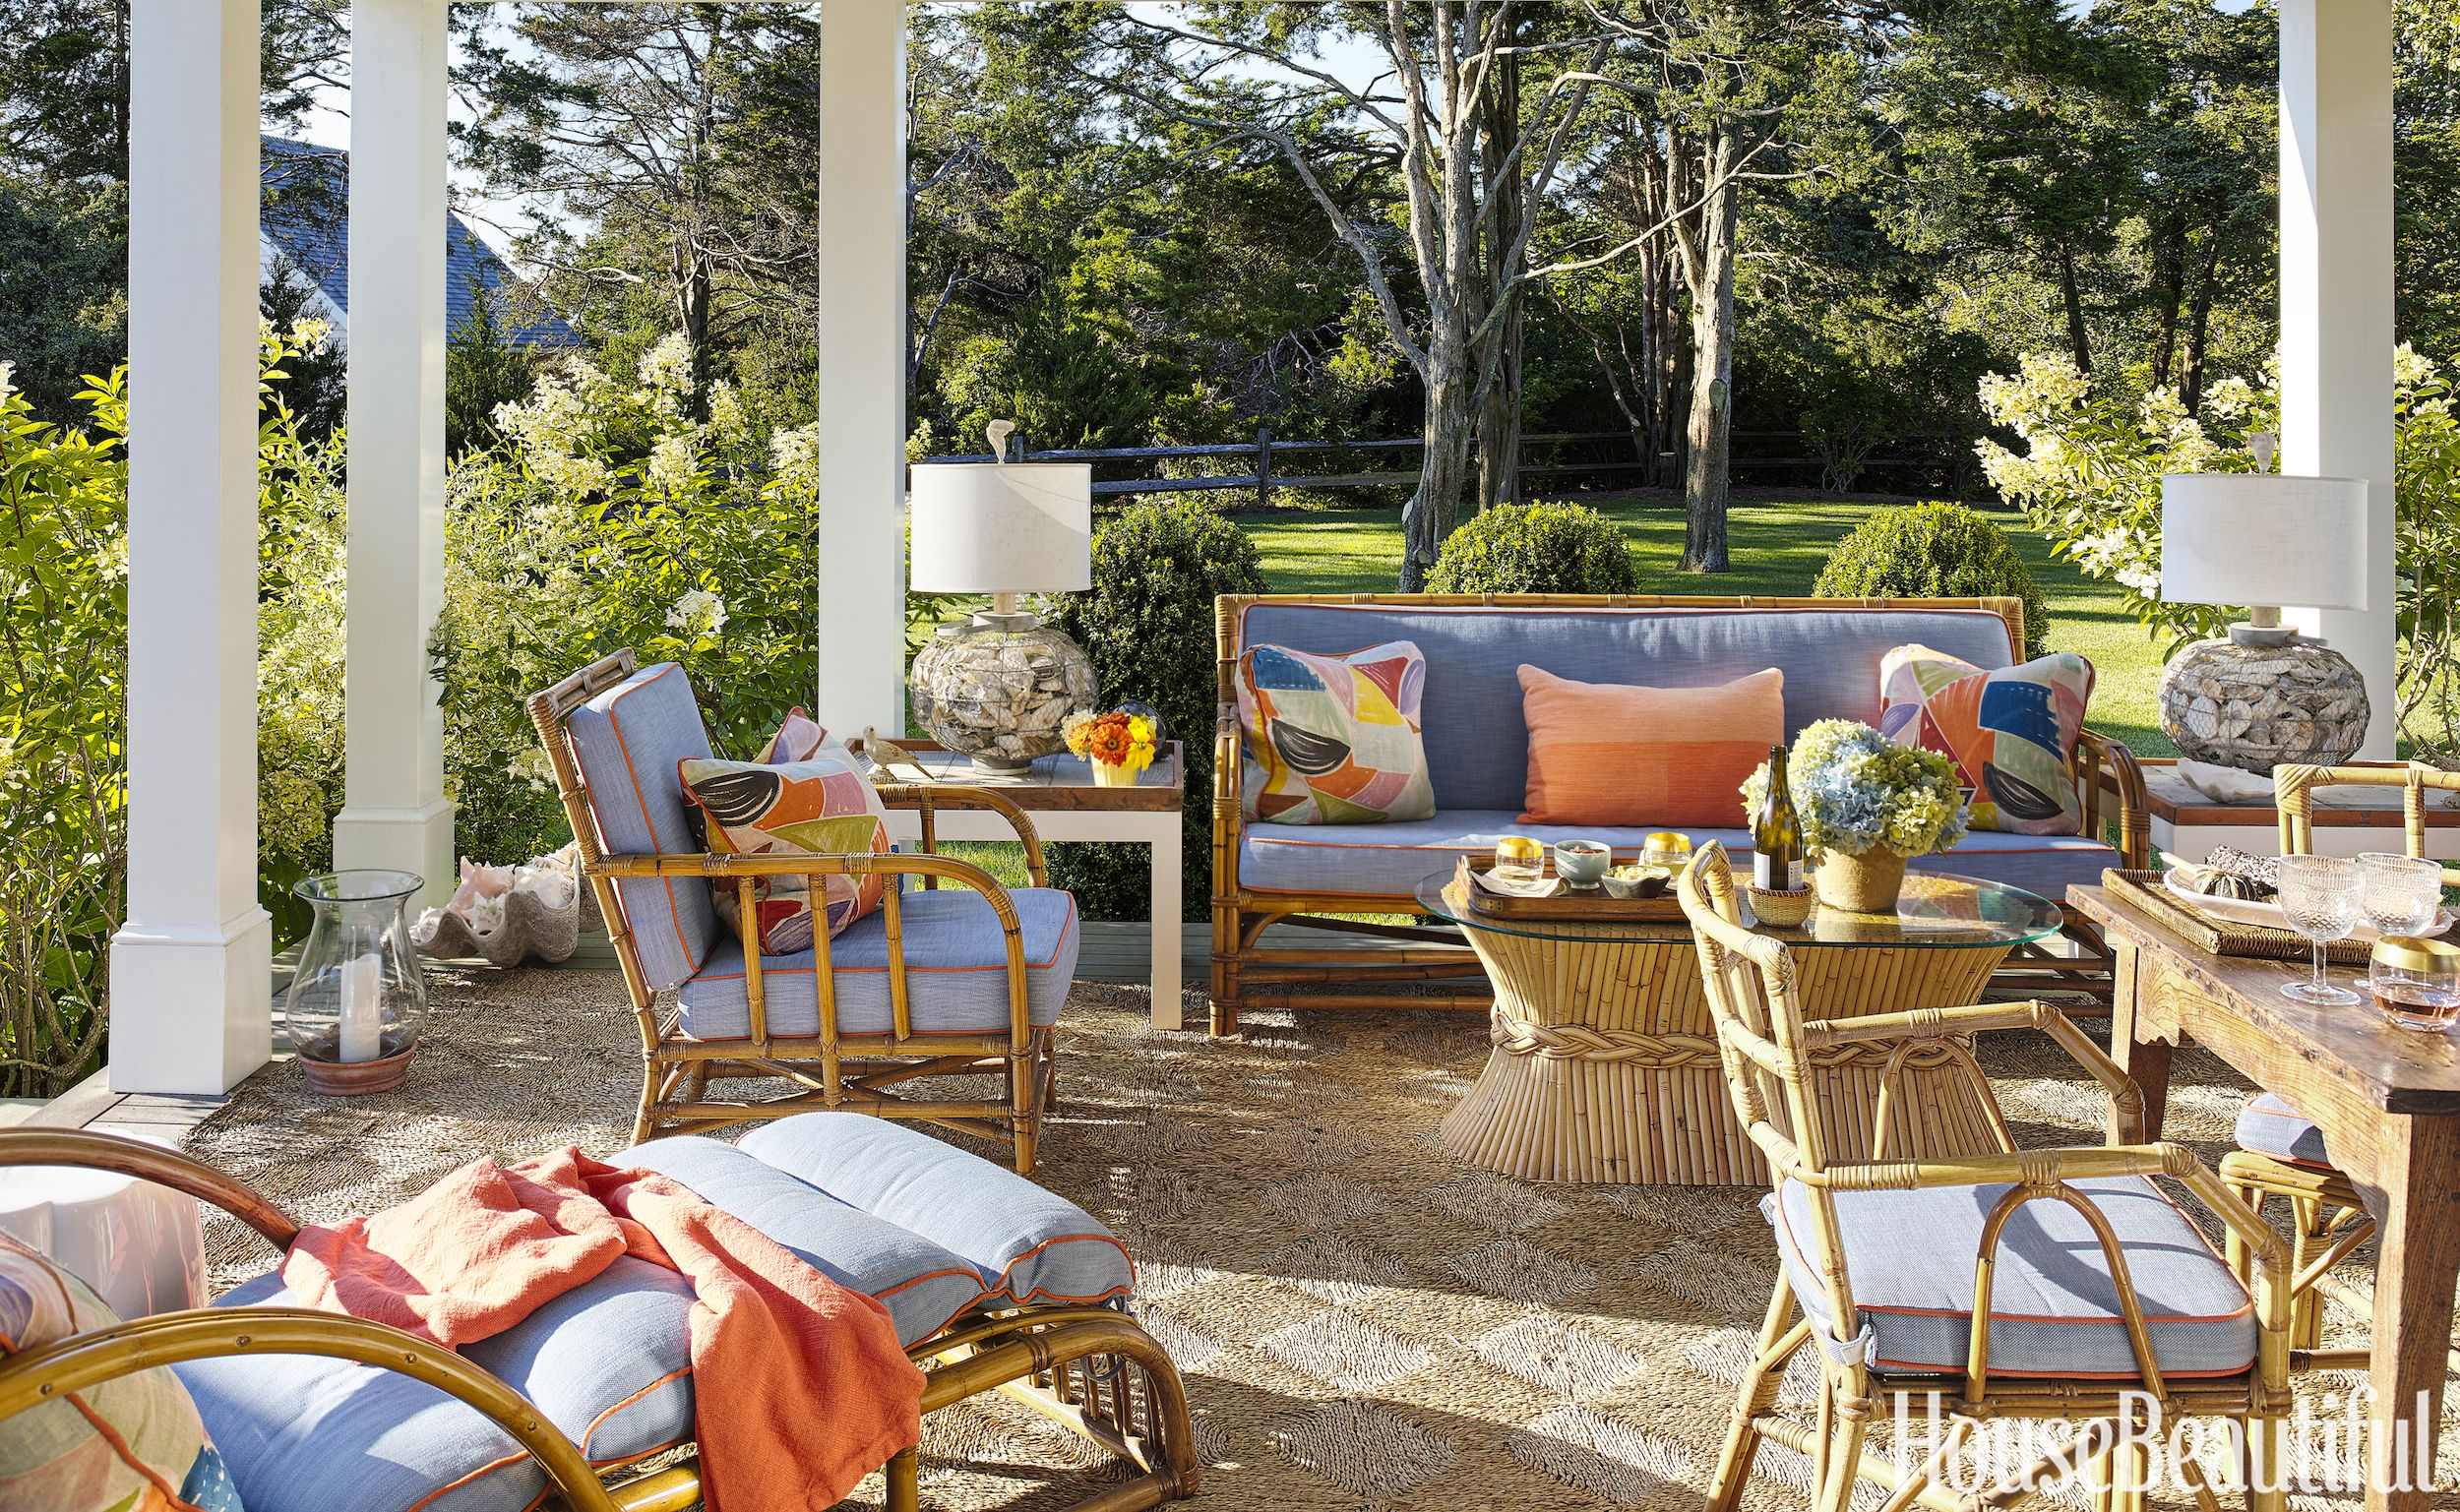 87 Patio and Outdoor Room Design Ideas and s